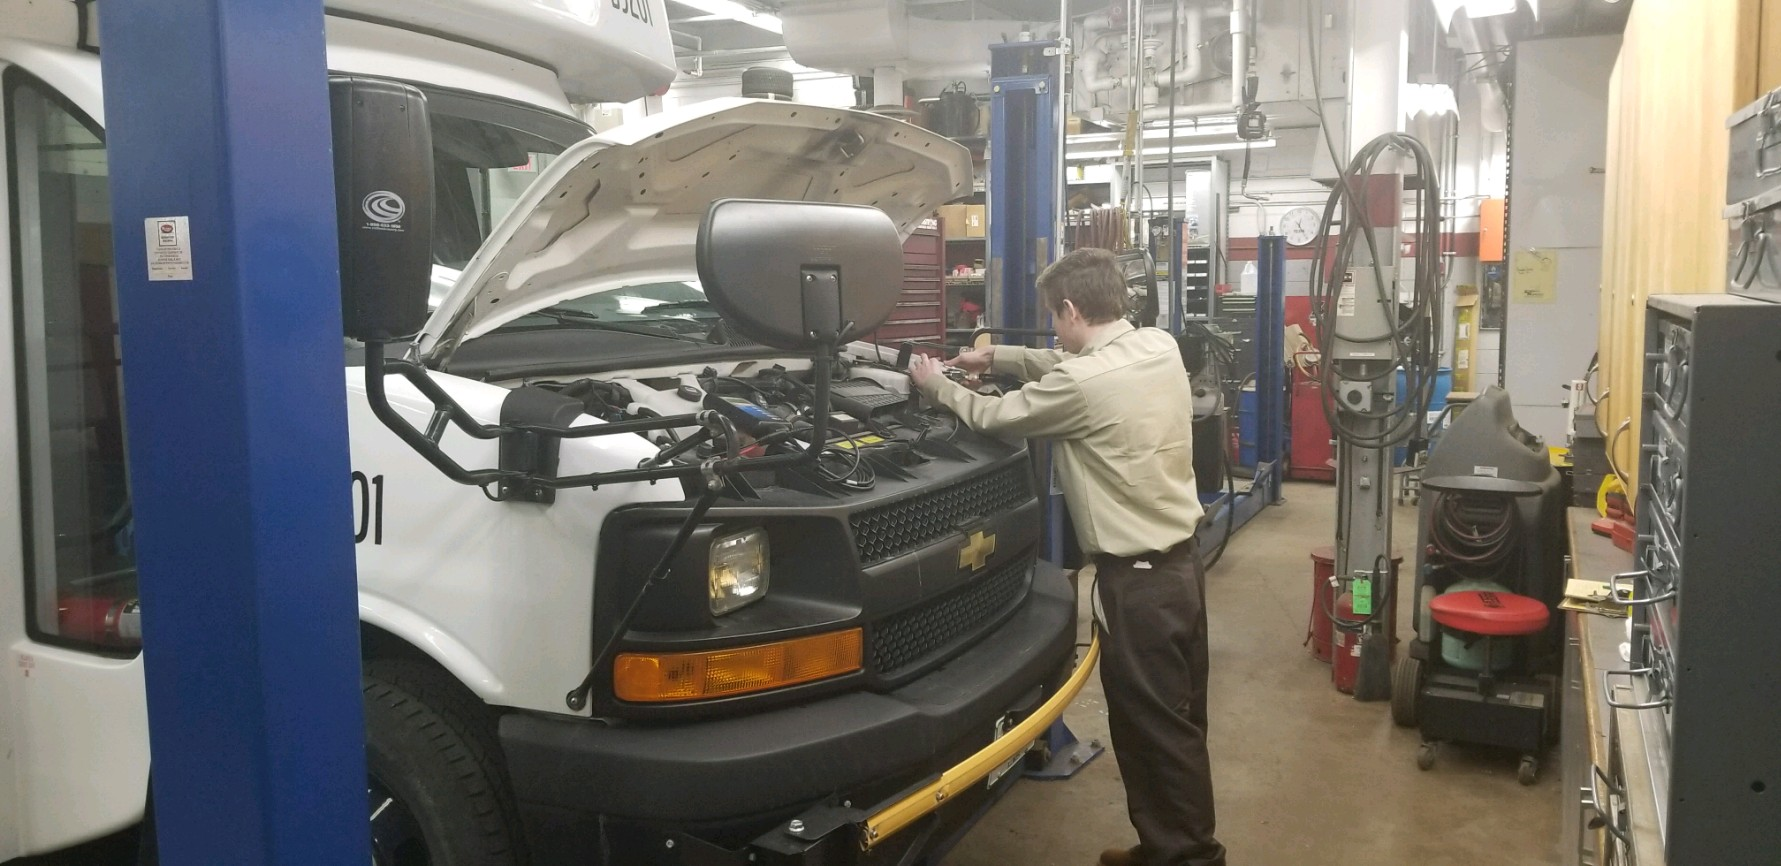 As part of the new Youth Apprenticeship program, District 214 students also have opportunities to gain experience and wages in the automotive and HVAC industries. All apprenticeships are held at District 214.